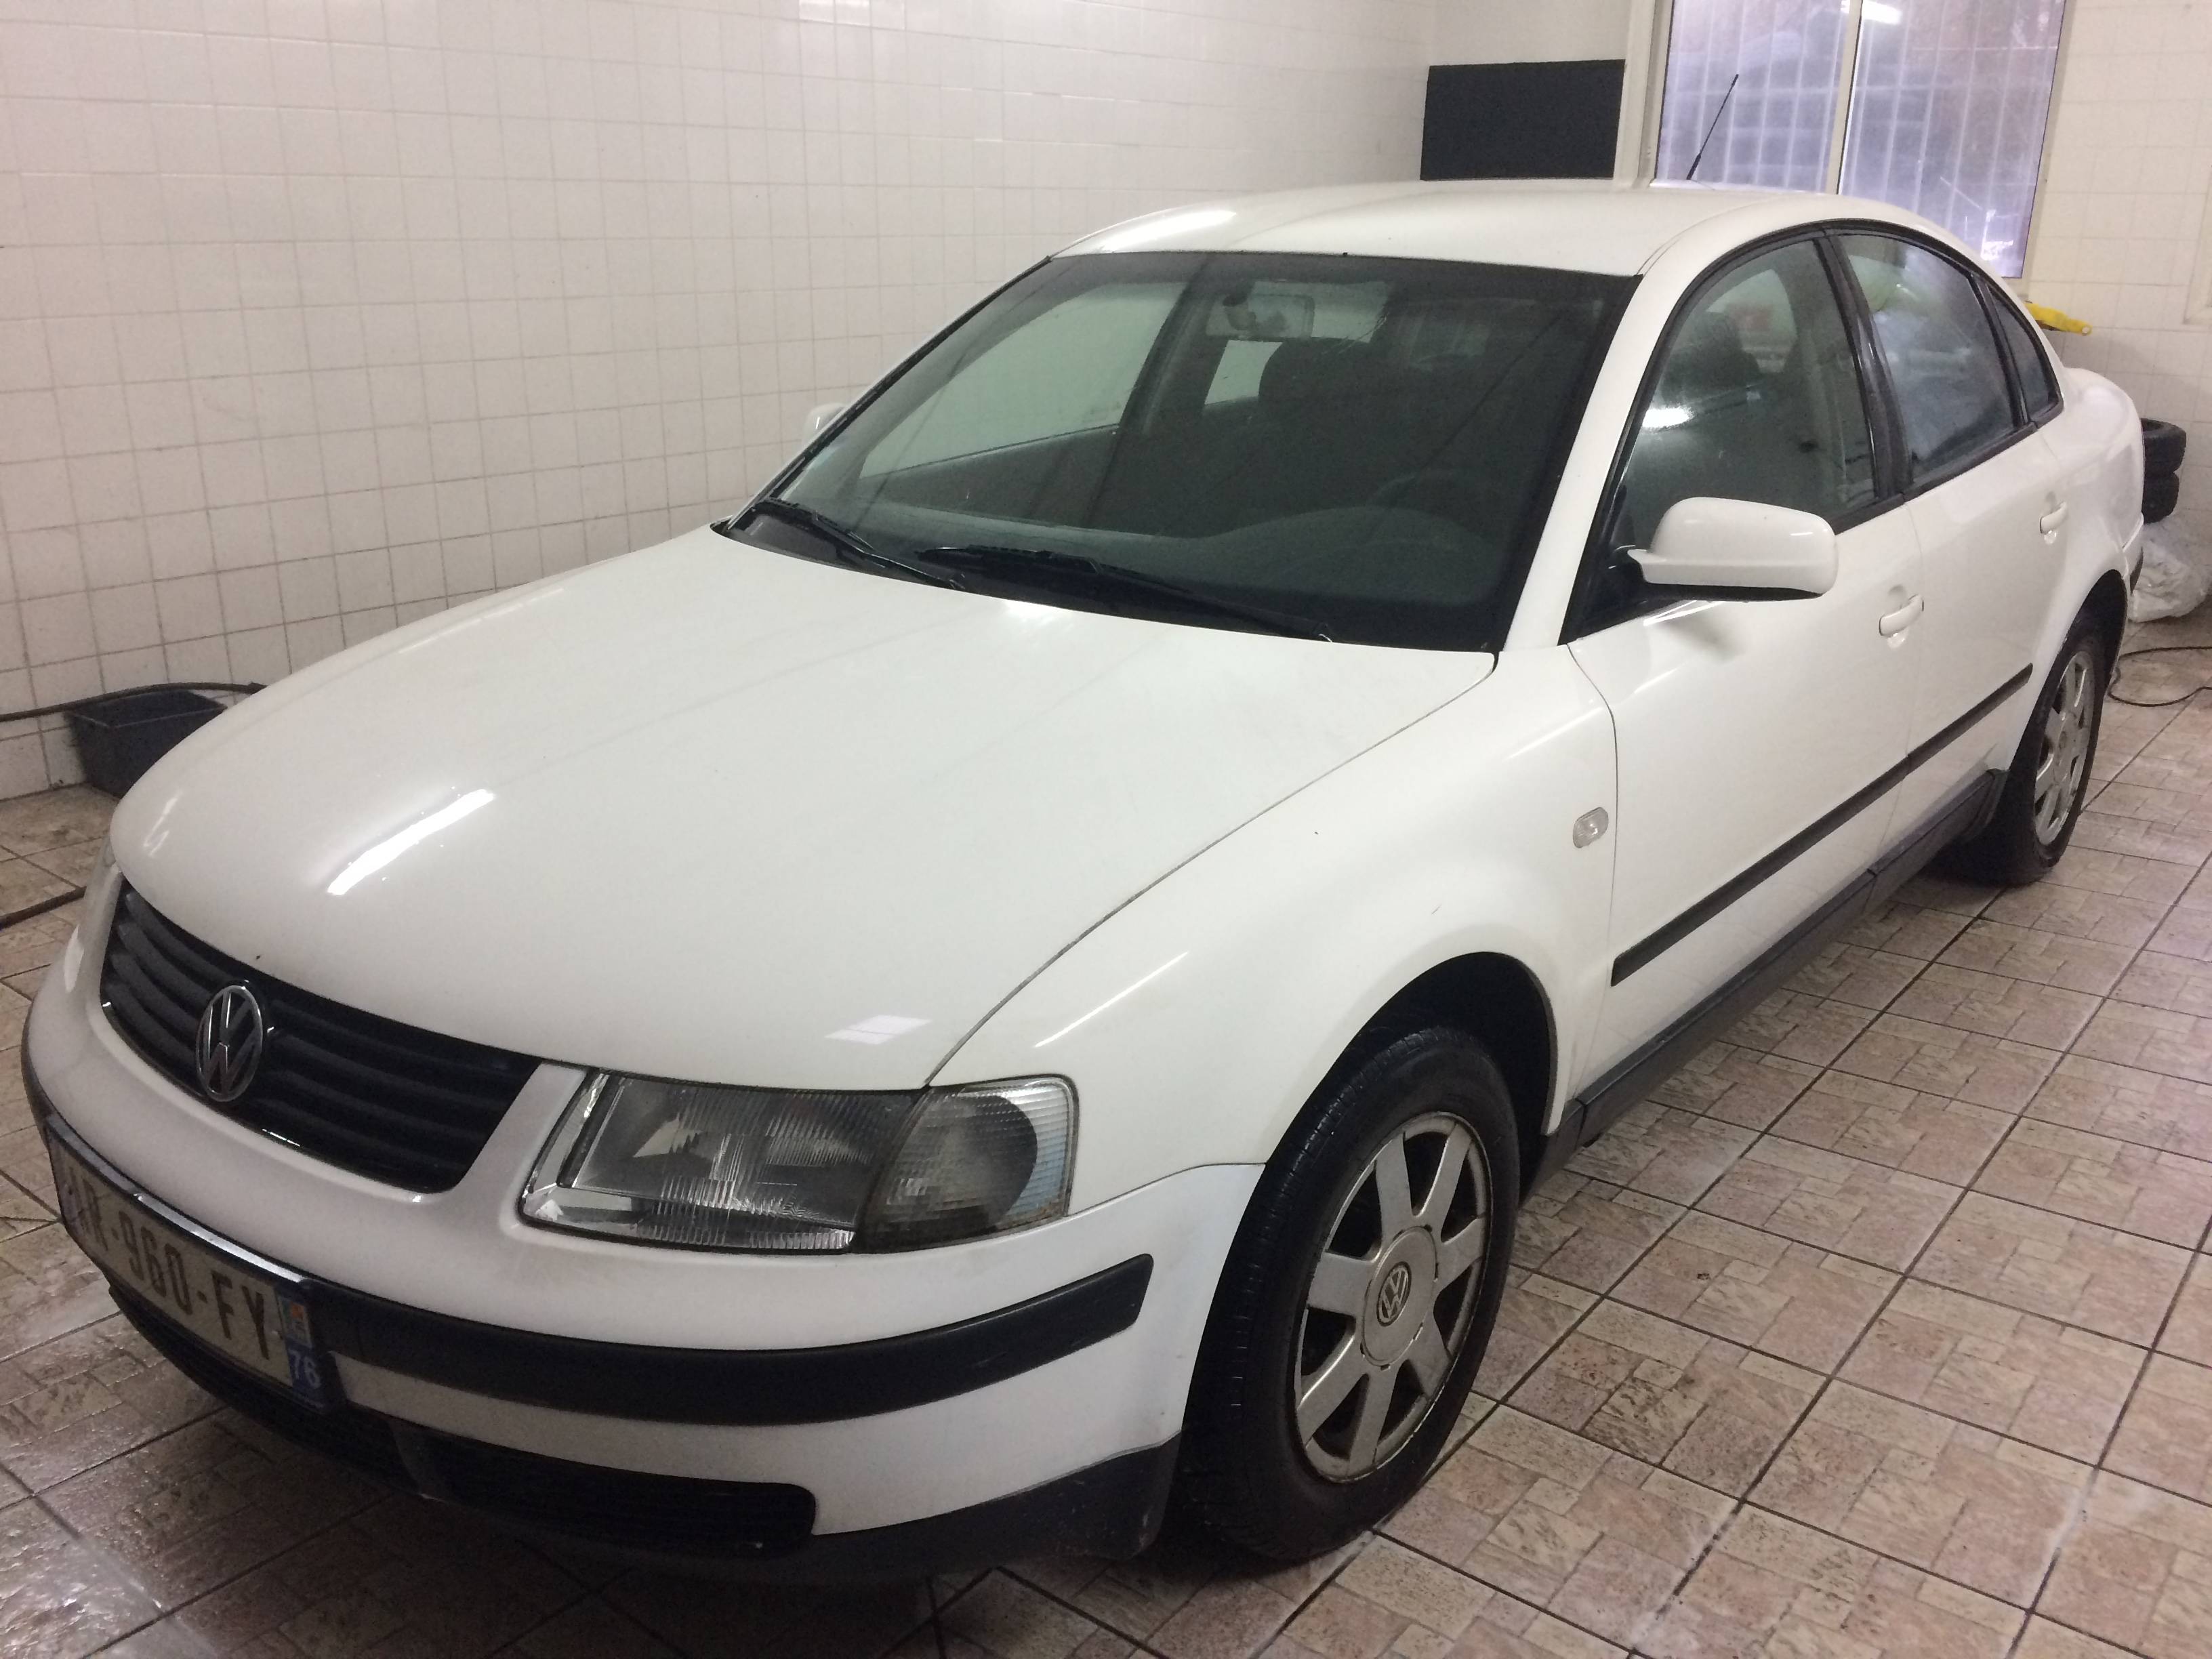 voiture volkswagen passat 1 9 tdi 115 confort occasion diesel 2000 358200 km 1990. Black Bedroom Furniture Sets. Home Design Ideas